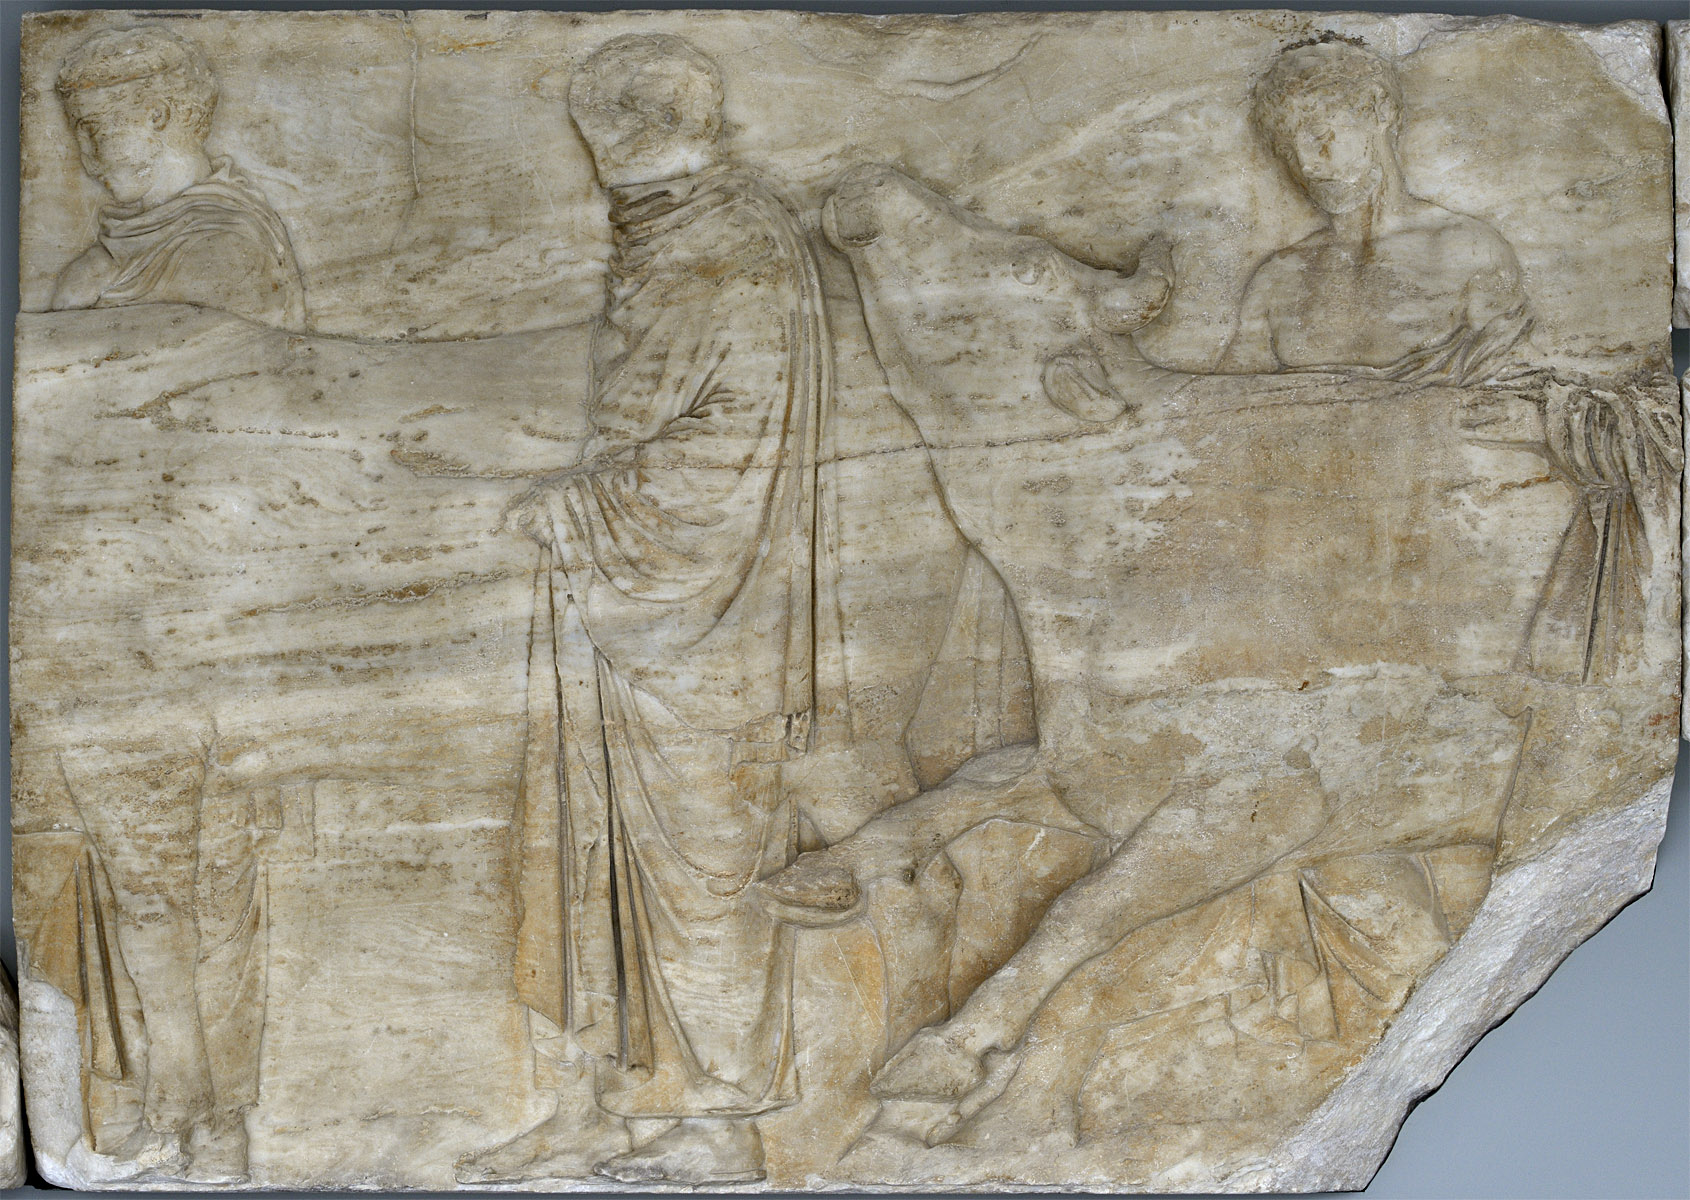 Panathenaic Procession. Men leading bulls. Frieze of Parthenon. The Northern face, block N II. Marble. 5th century BCE. Inv. No. Acr. 857. Athens, New Acropolis Museum